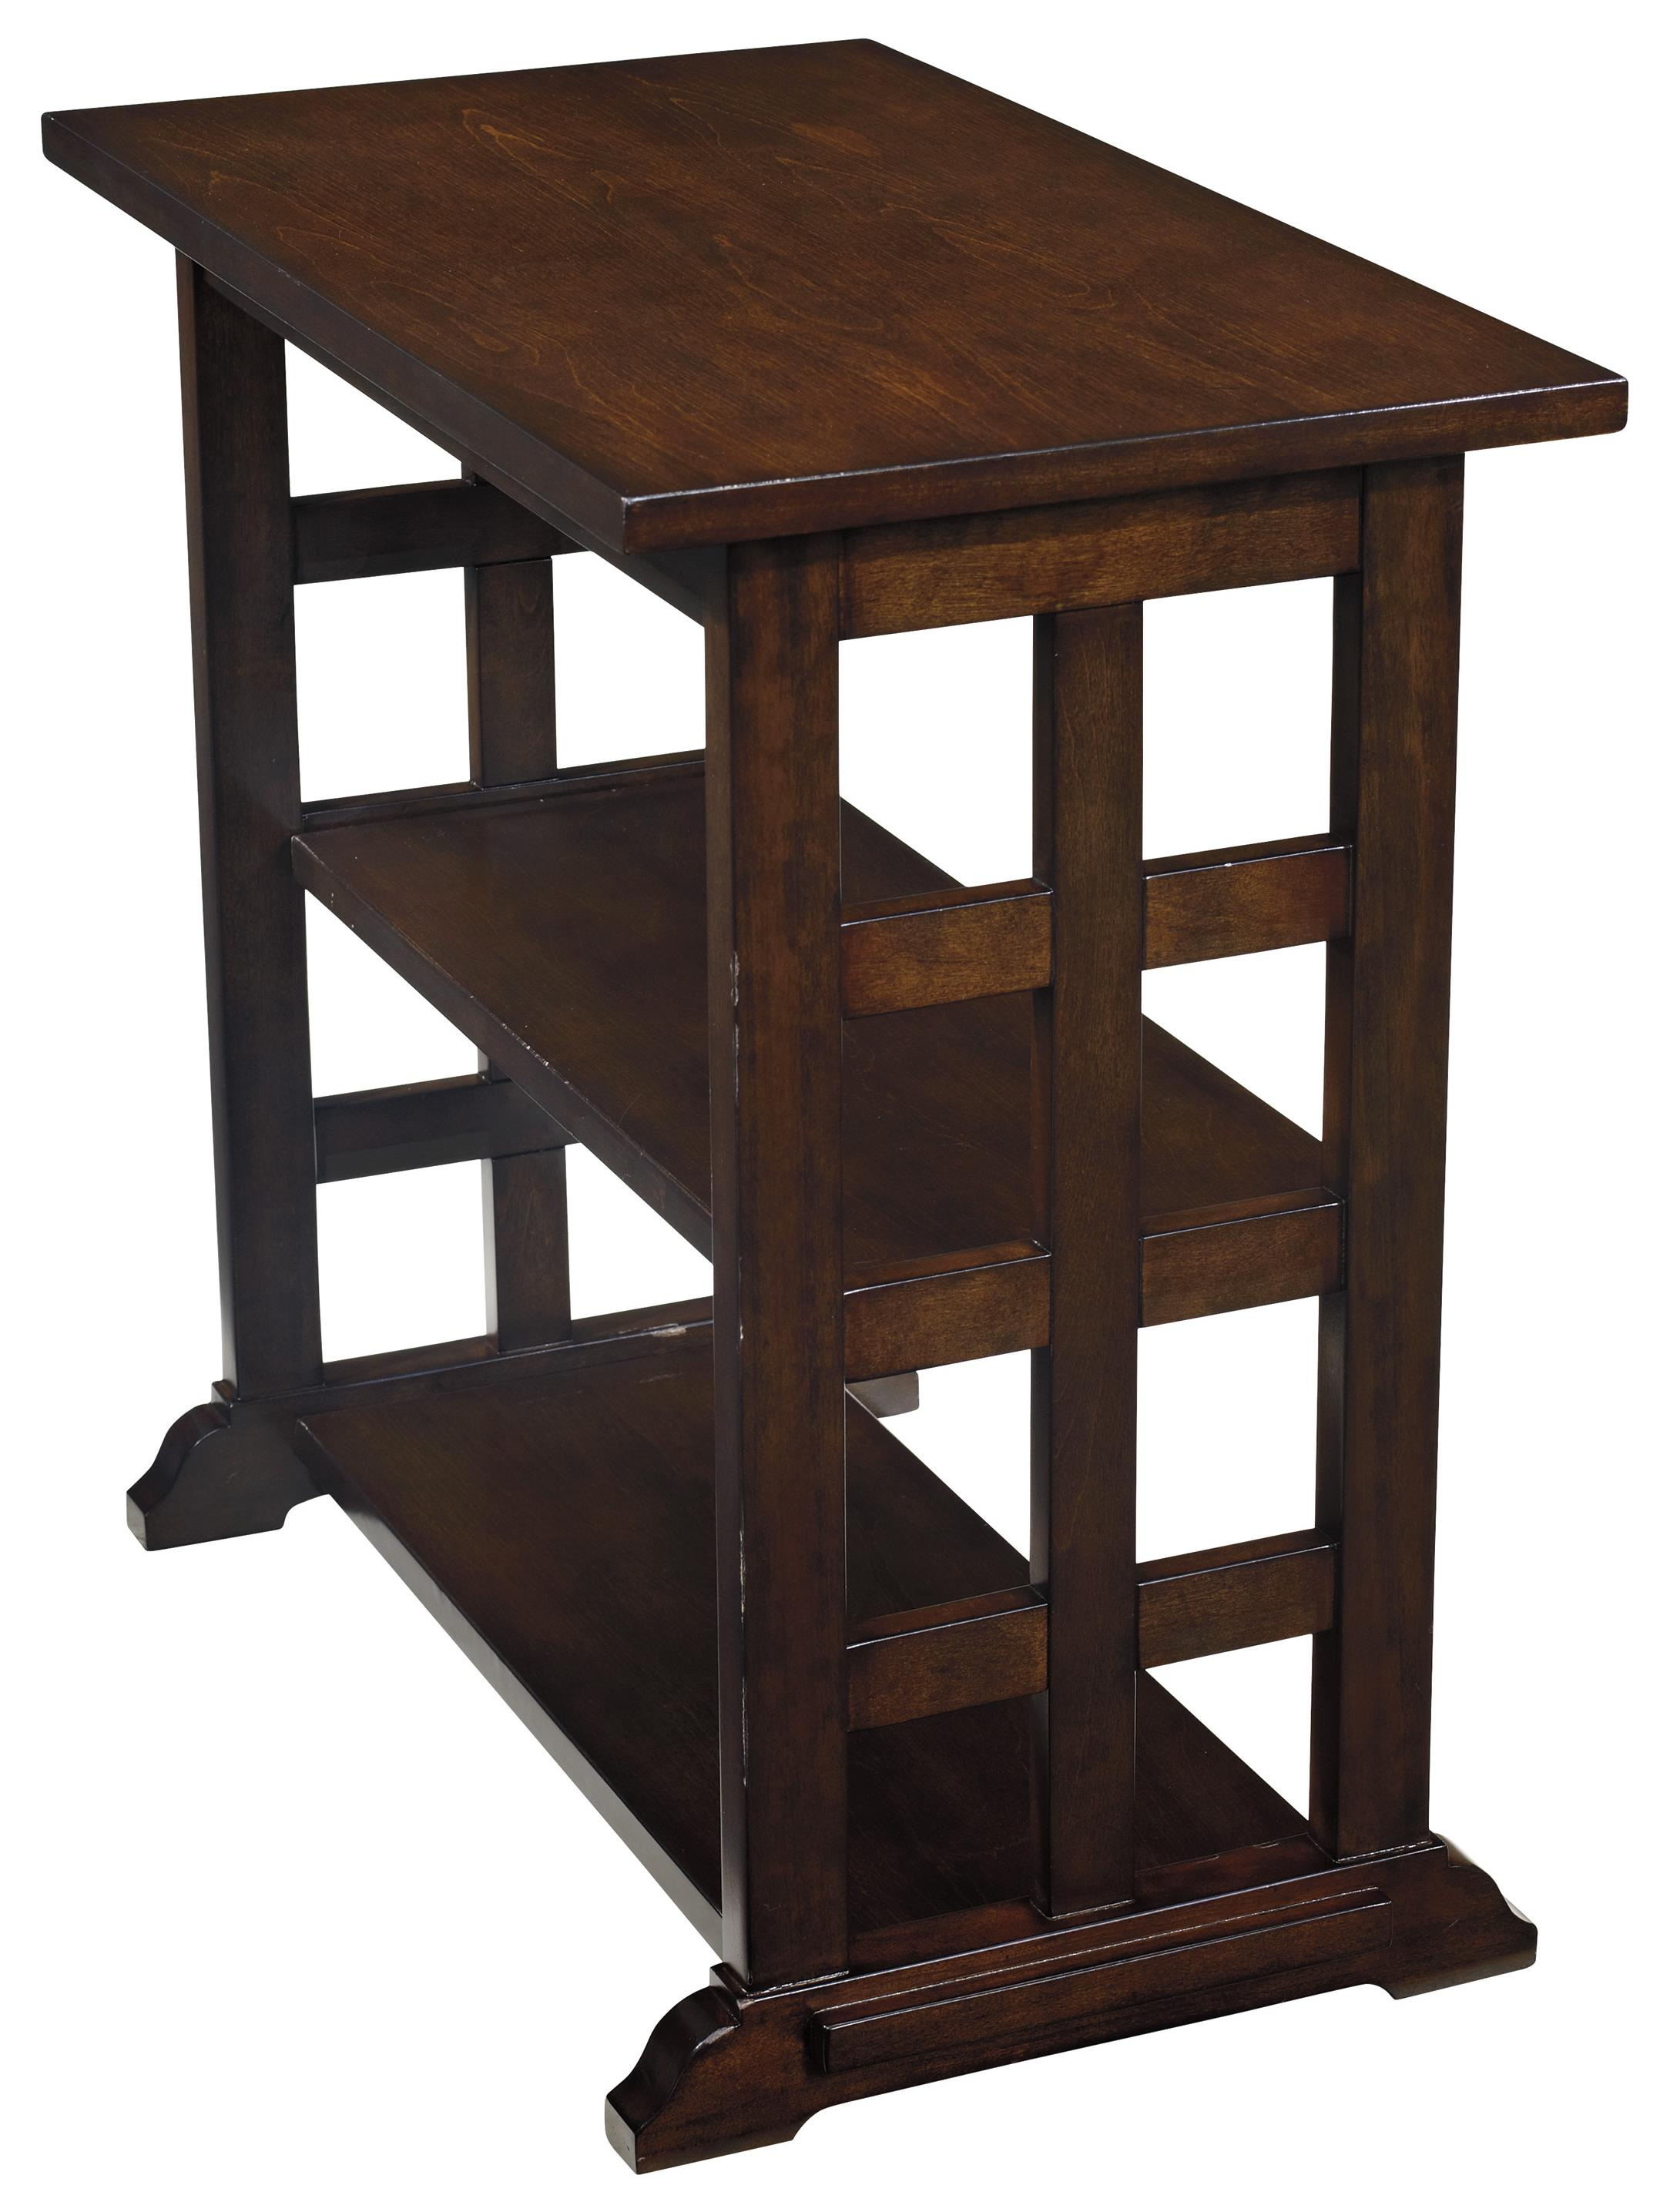 chair side end table with lattice design 2 shelves by signature design by ashley wolf and. Black Bedroom Furniture Sets. Home Design Ideas